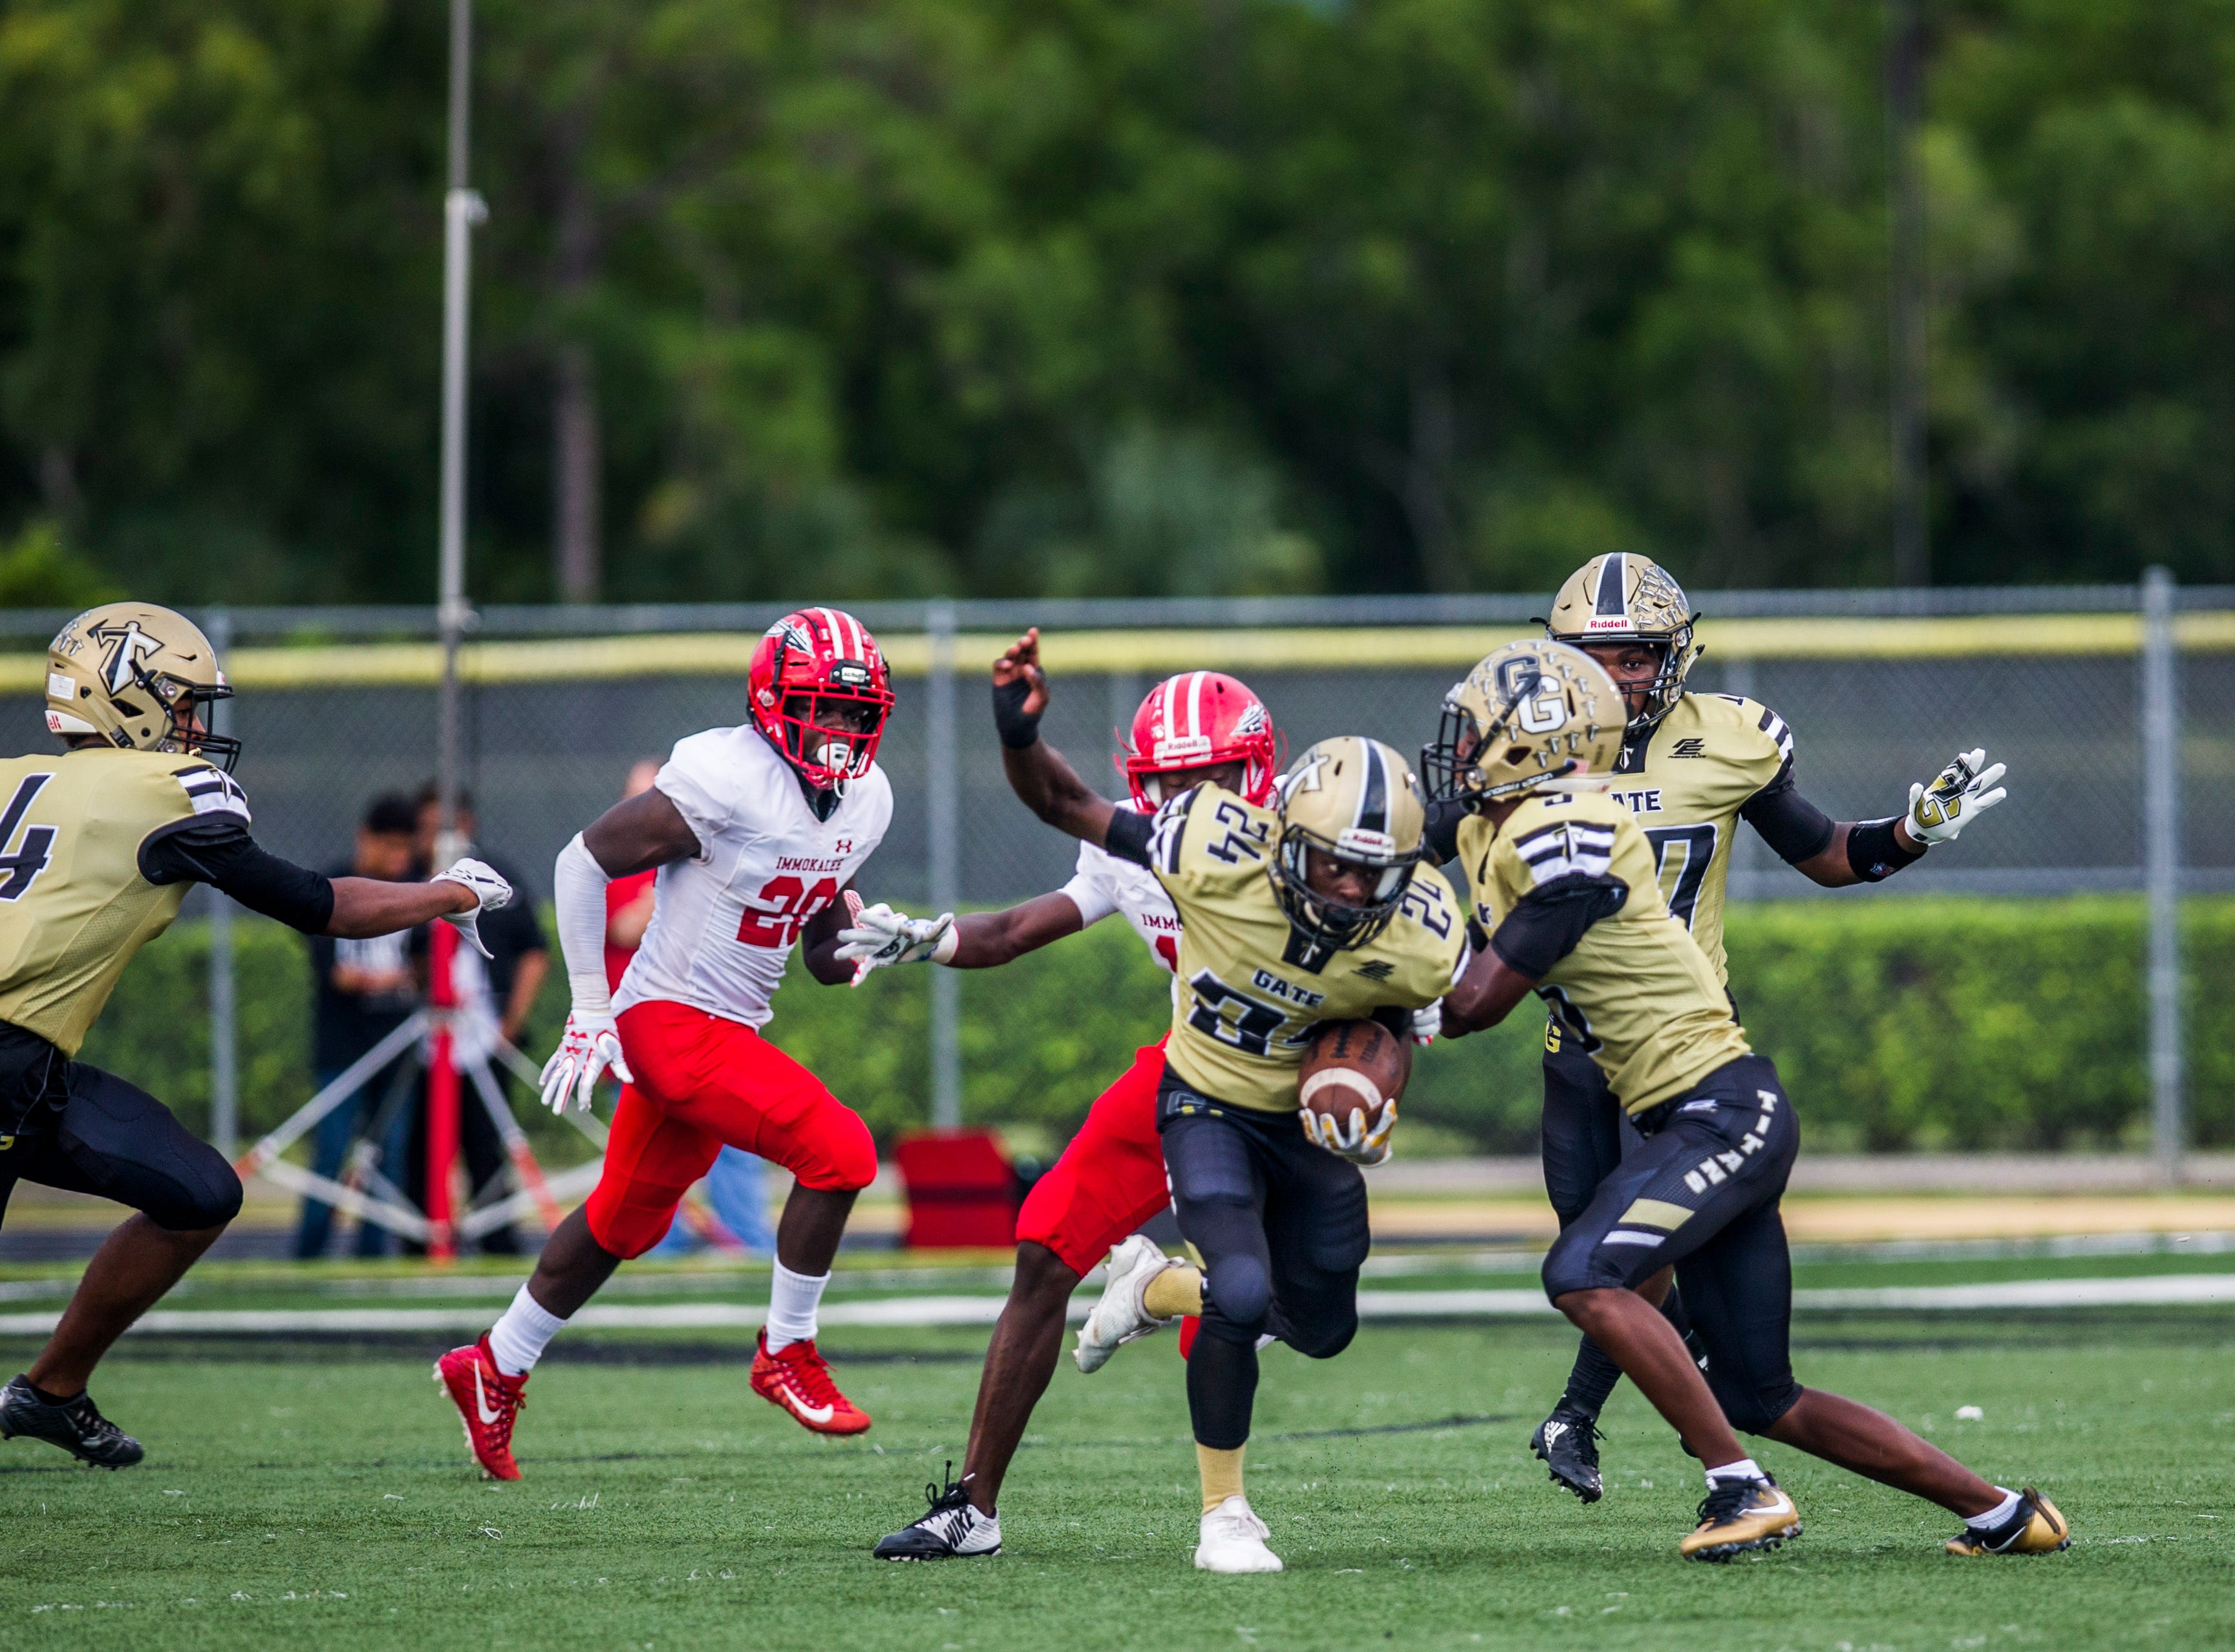 Golden Gate during the game against Immokalee at Golden Gate High School on Friday, Aug. 24, 2018.